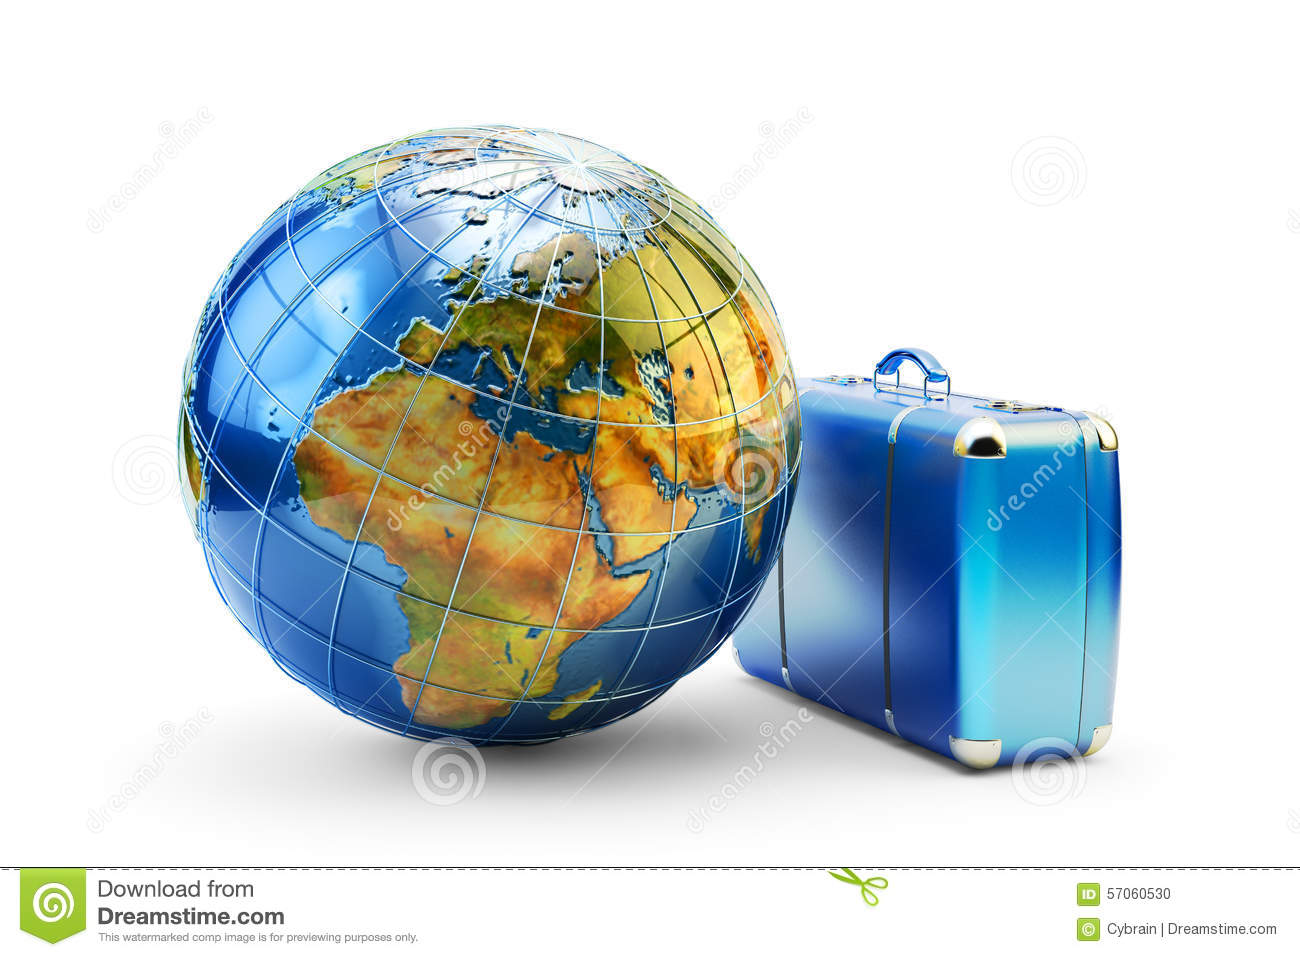 Travel around the world journey voyage and vacation for Around the world cruise